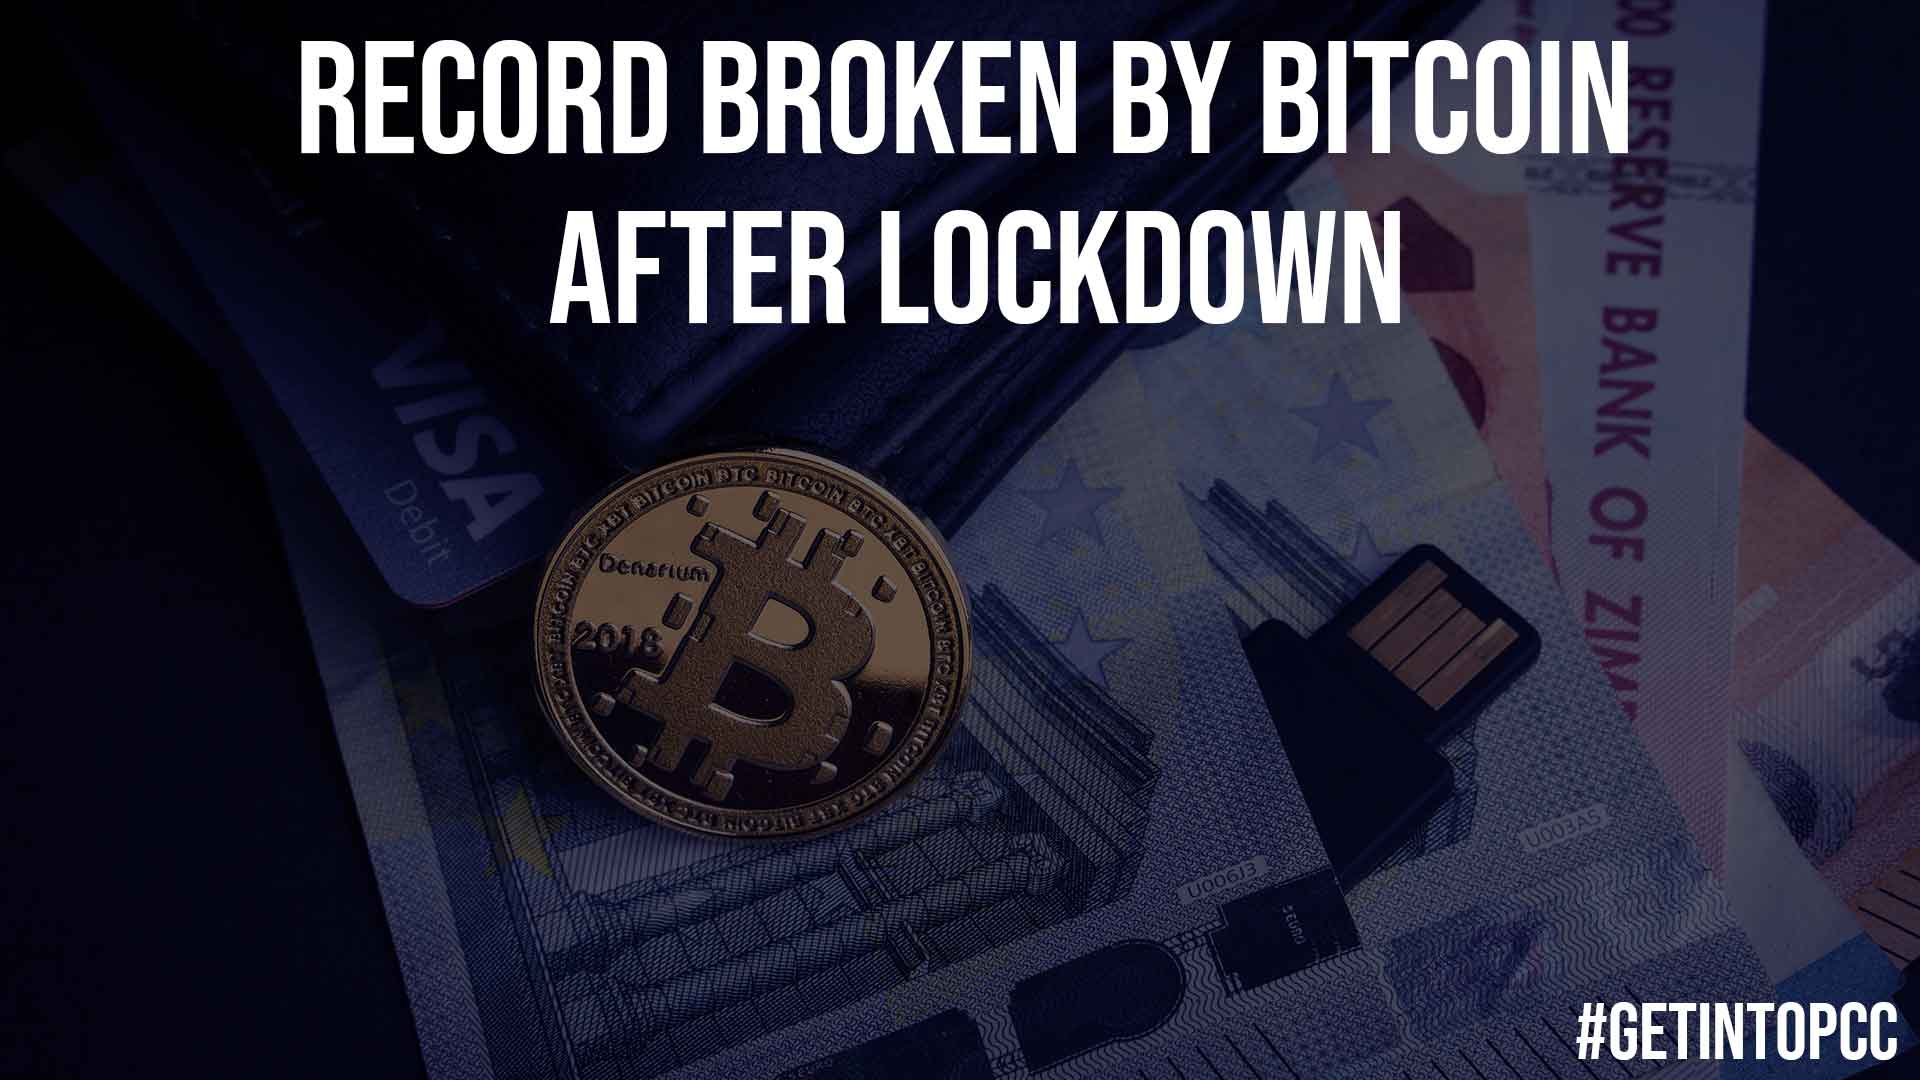 Record Broken by Bitcoin After Lockdown